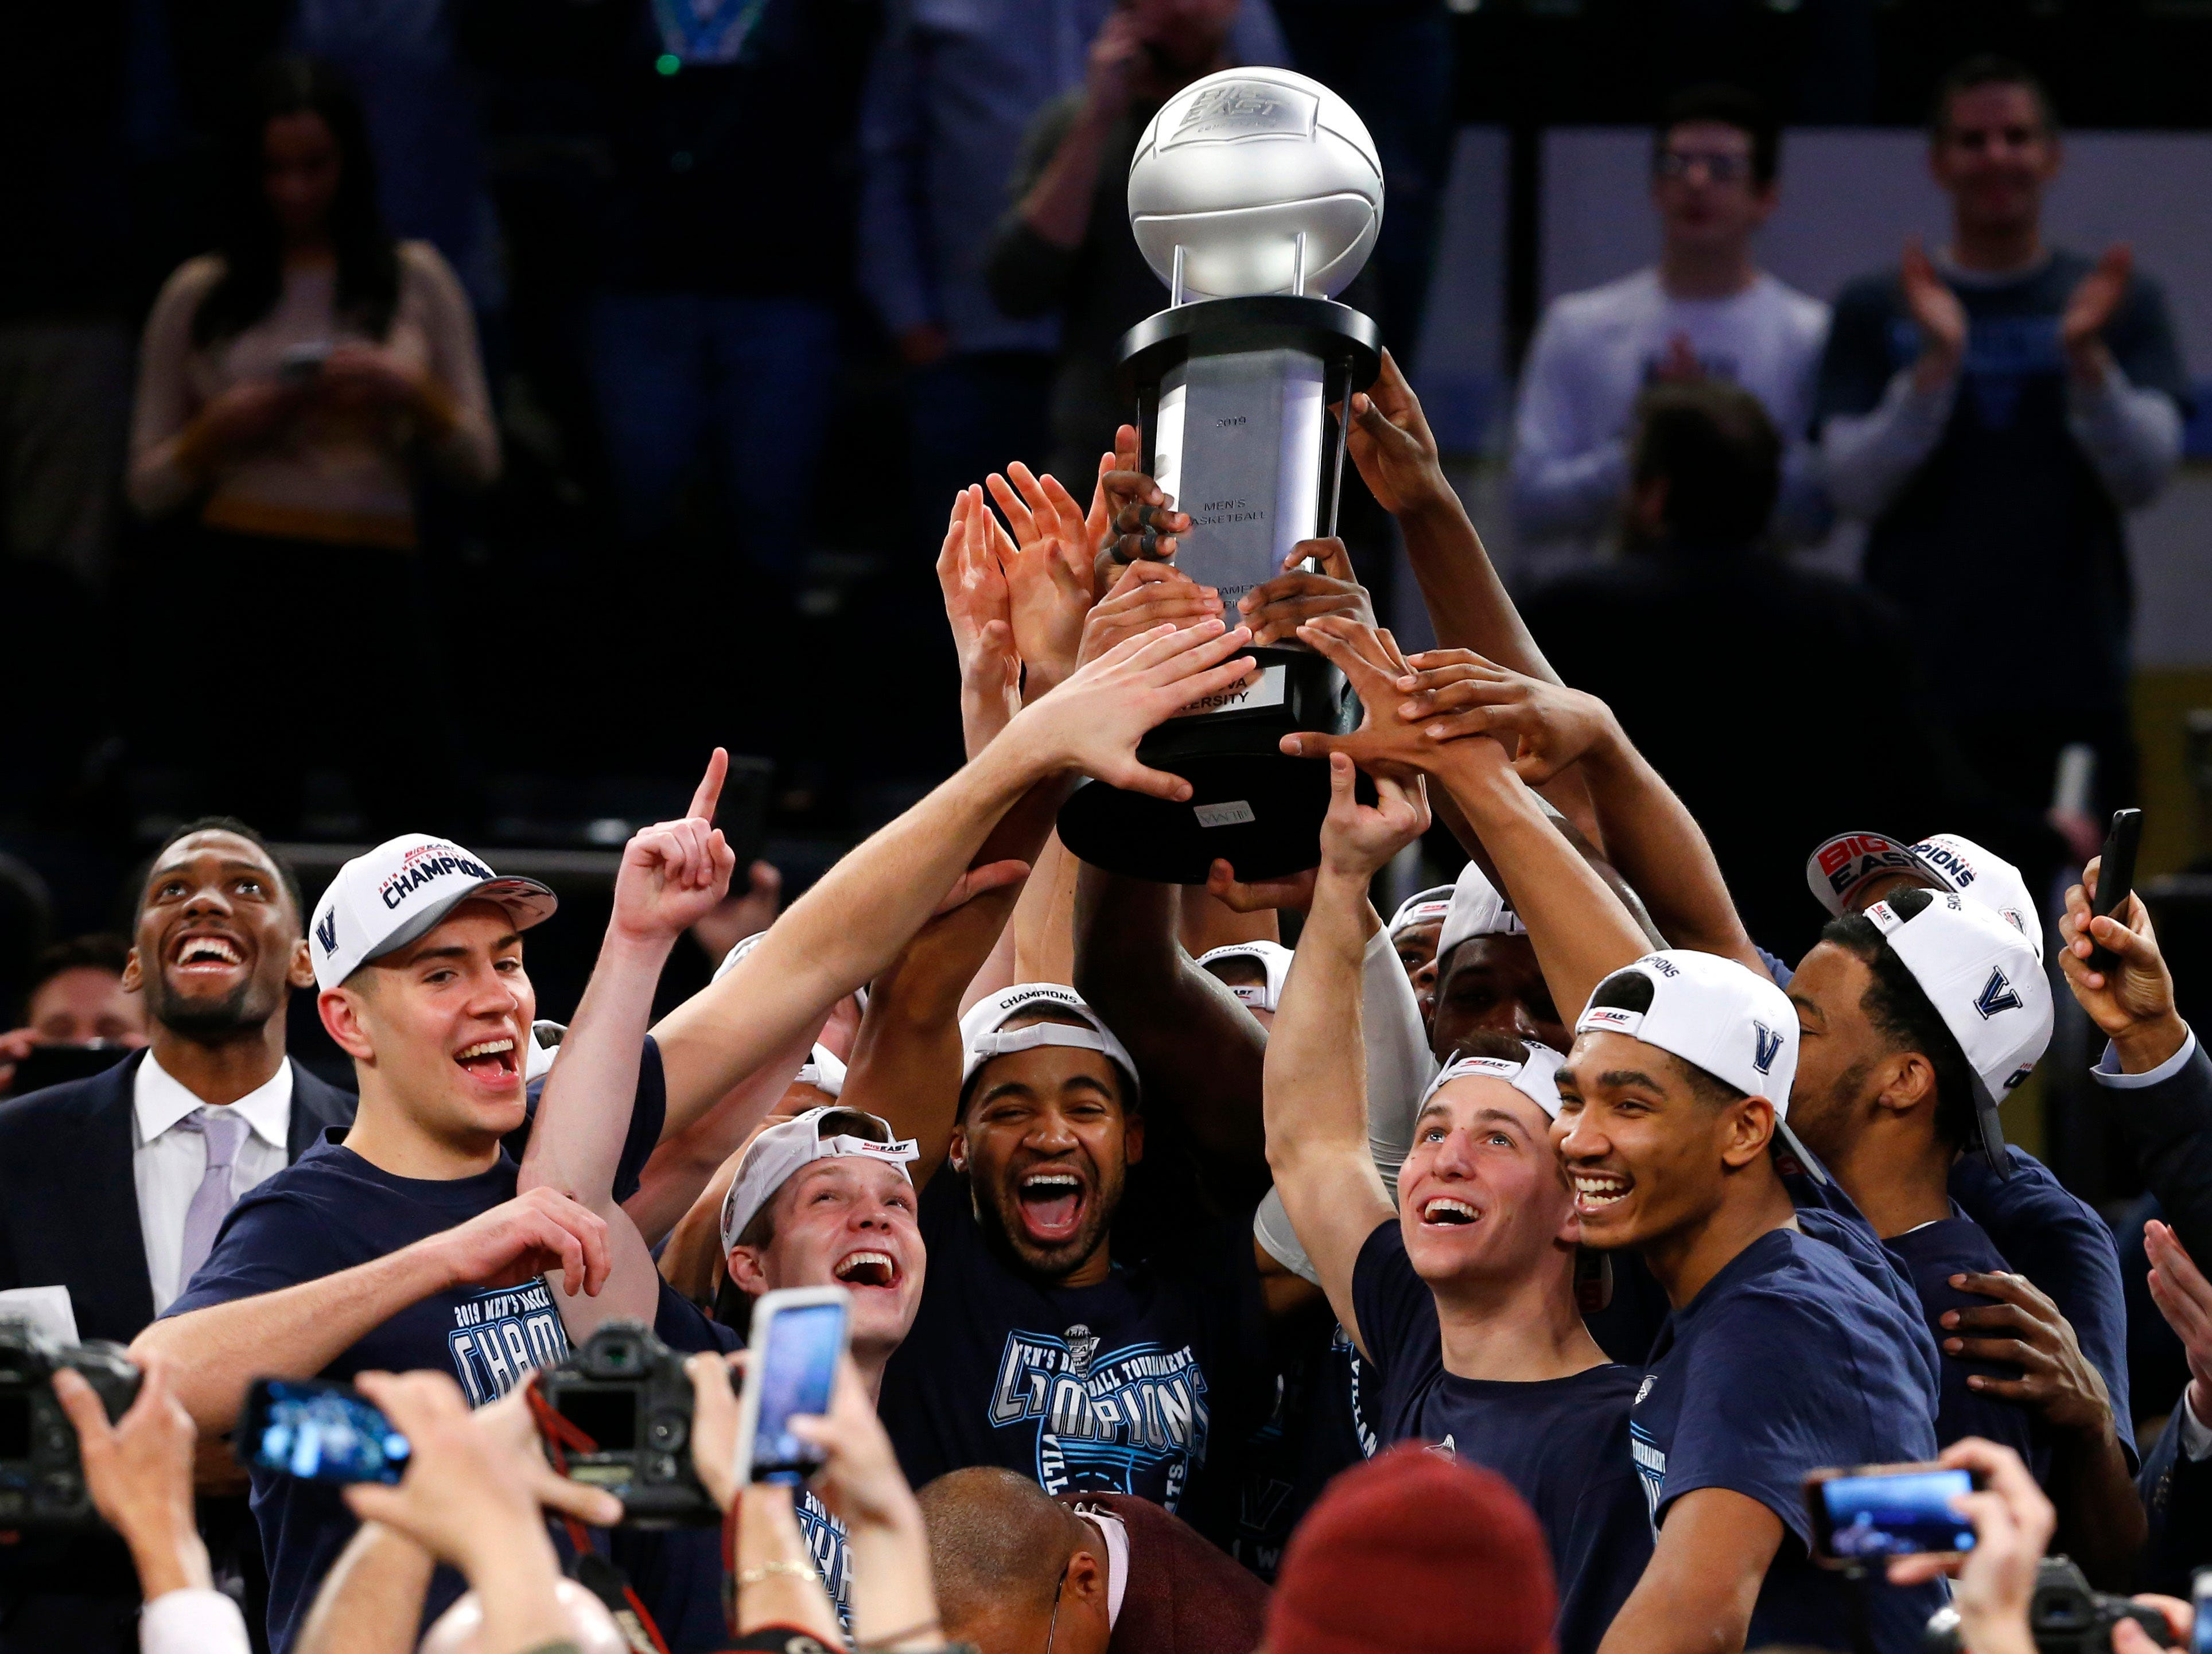 Villanova (25-9), No. 6 seed in South, Big East Conference champion